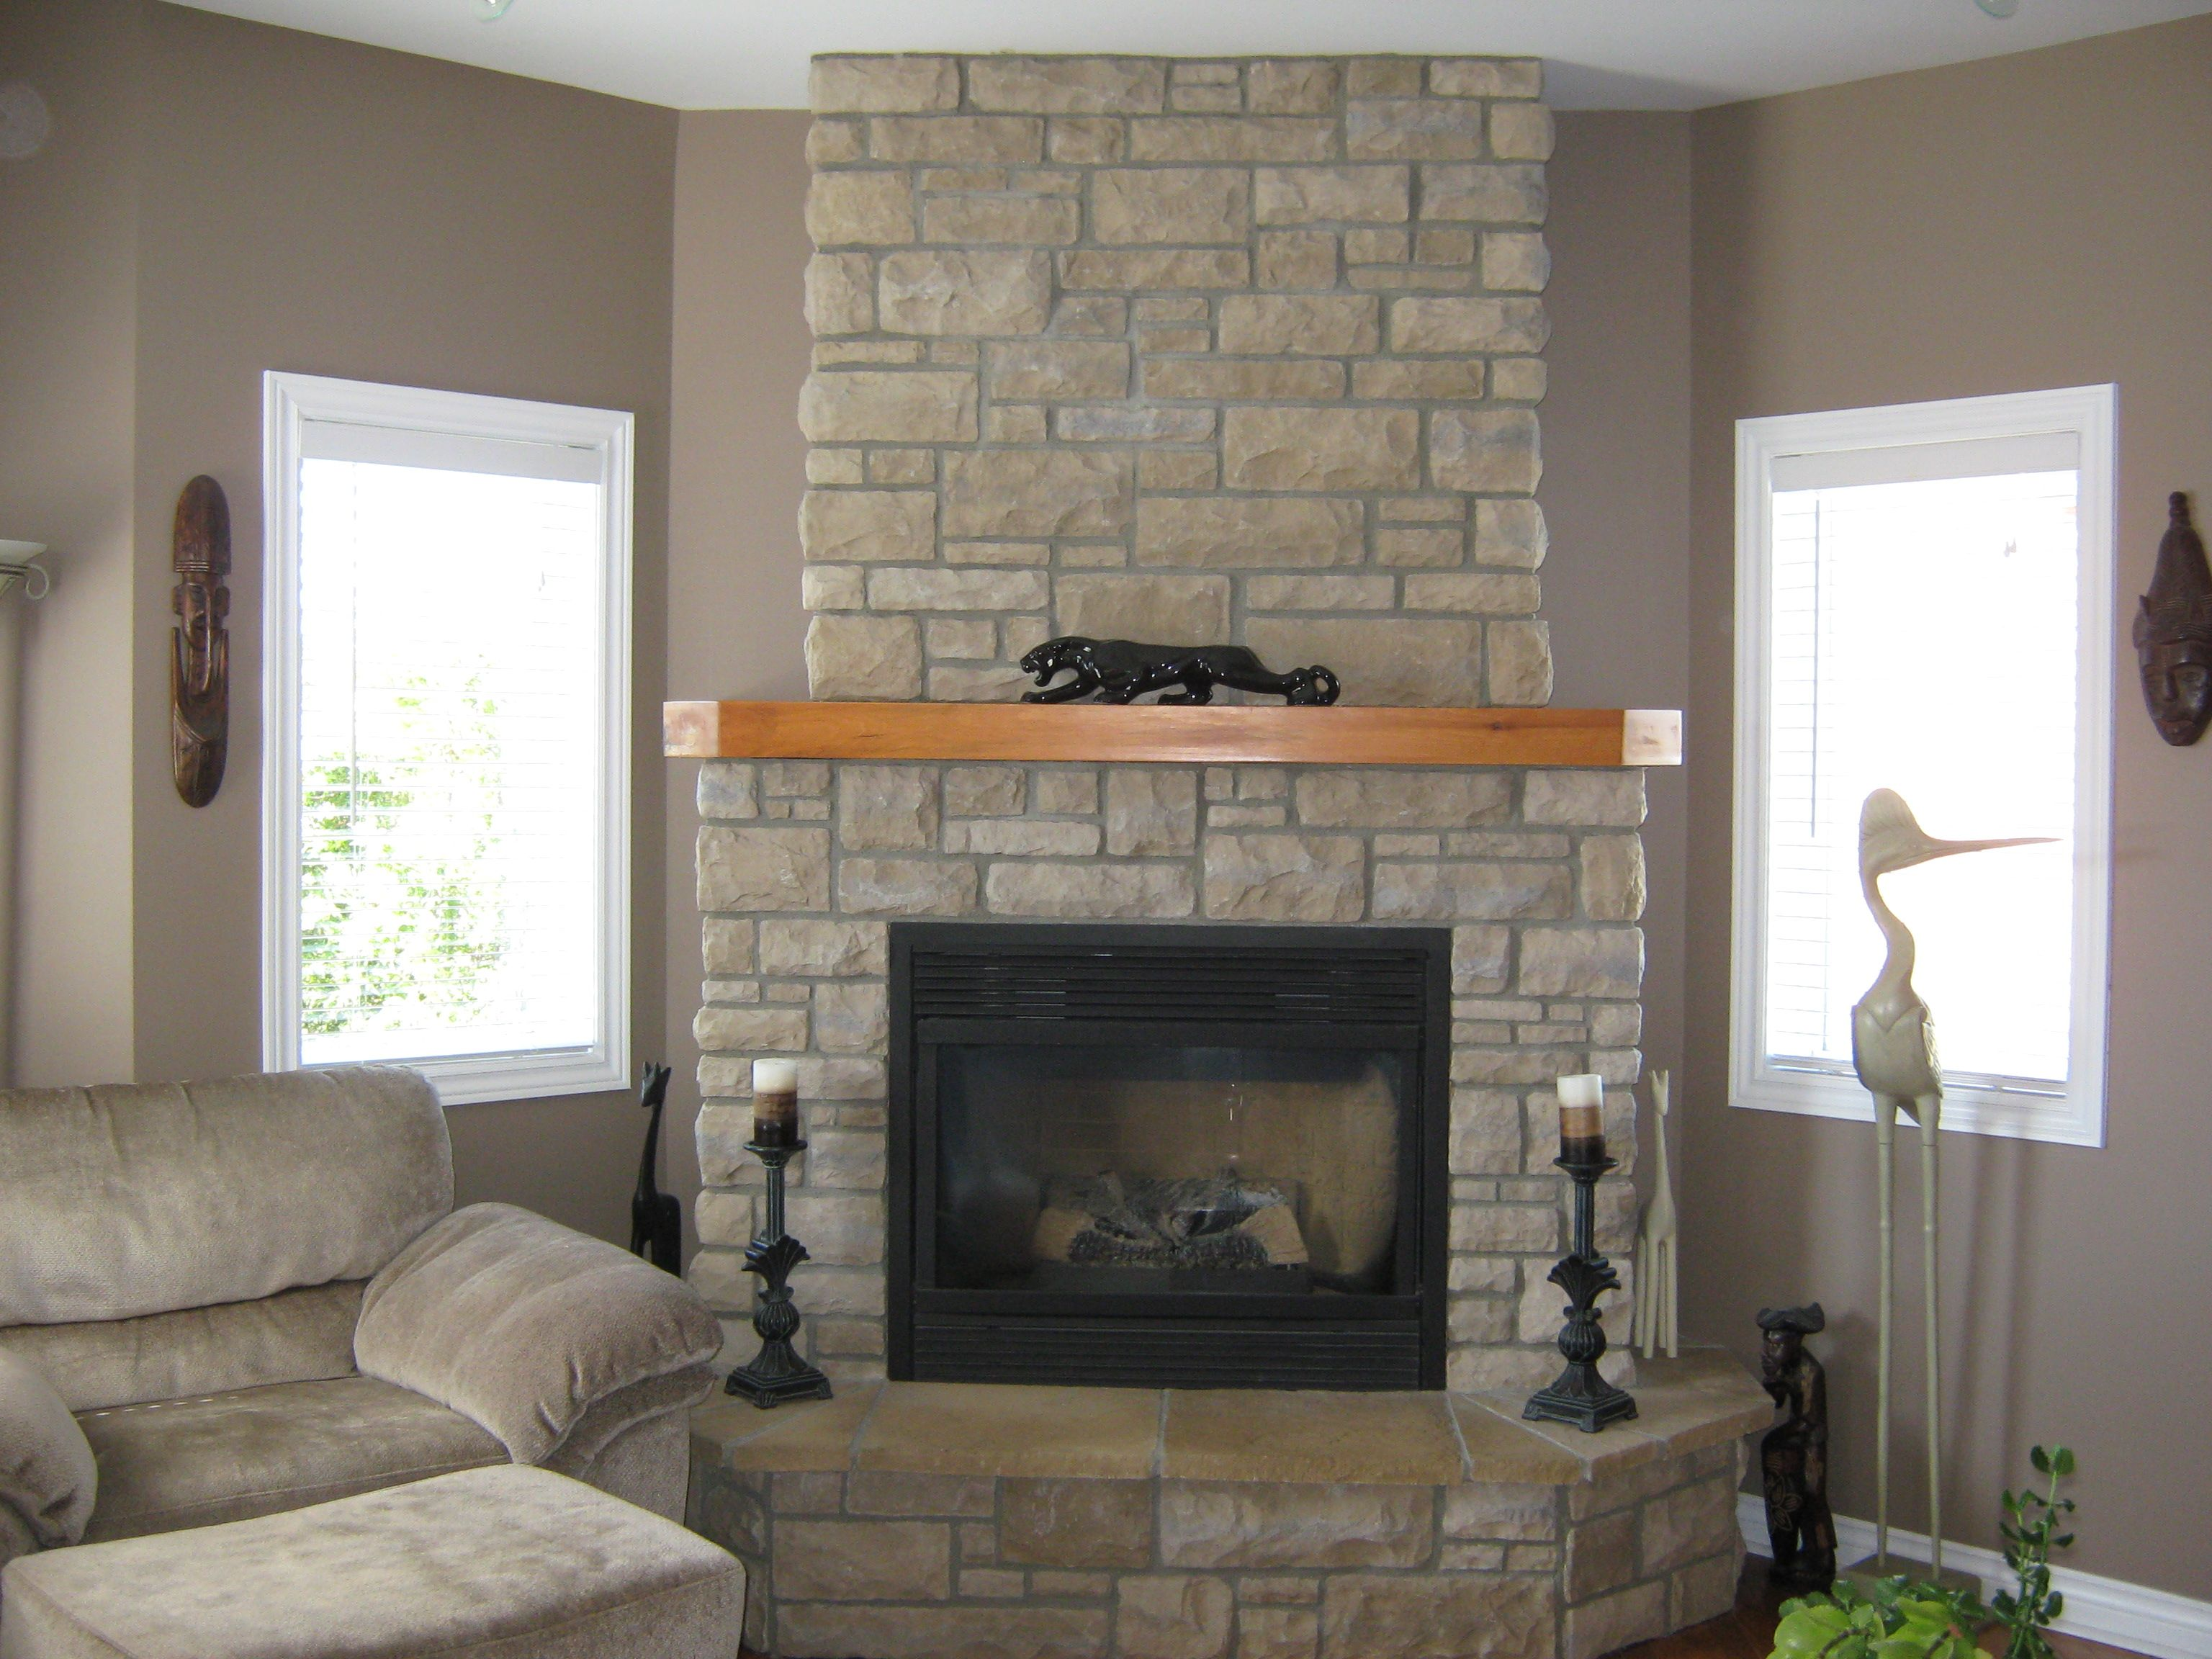 pin by shanna allen on fireplaces pinterest gas fireplace